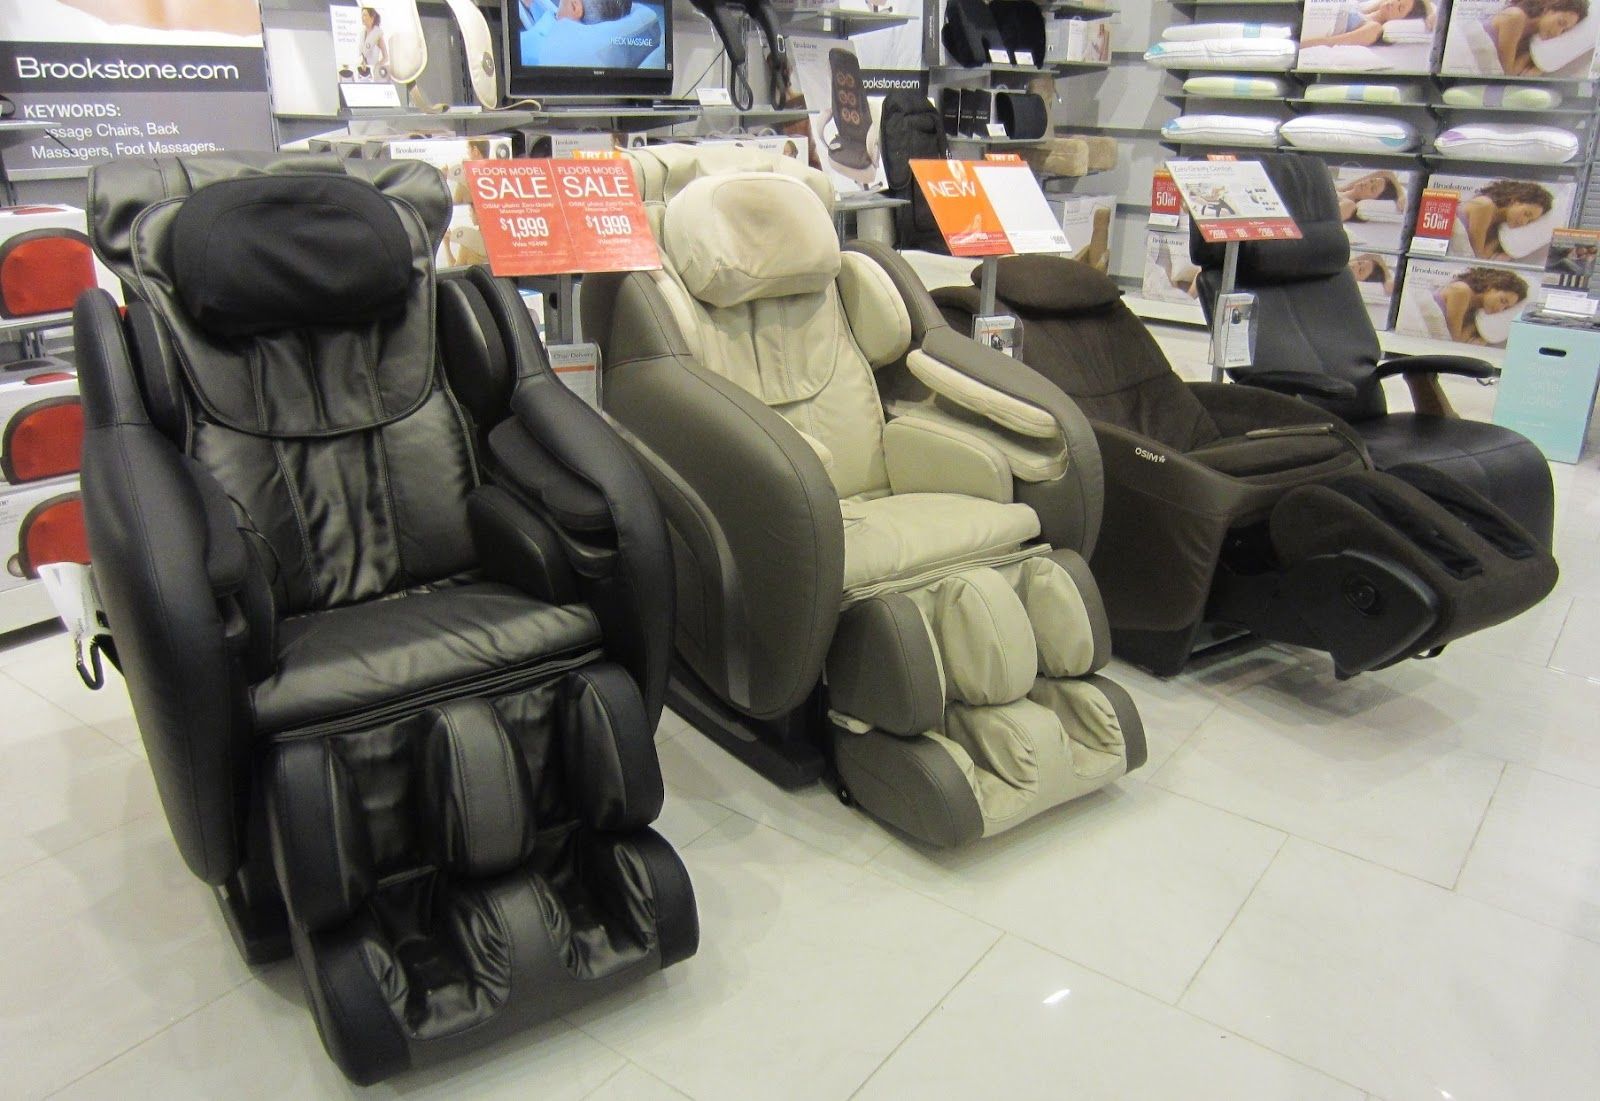 Osim Ustyle2 Massage Chair Evan And Lauren S Cool Blog 7 17 12 Brookstone Cool Products For